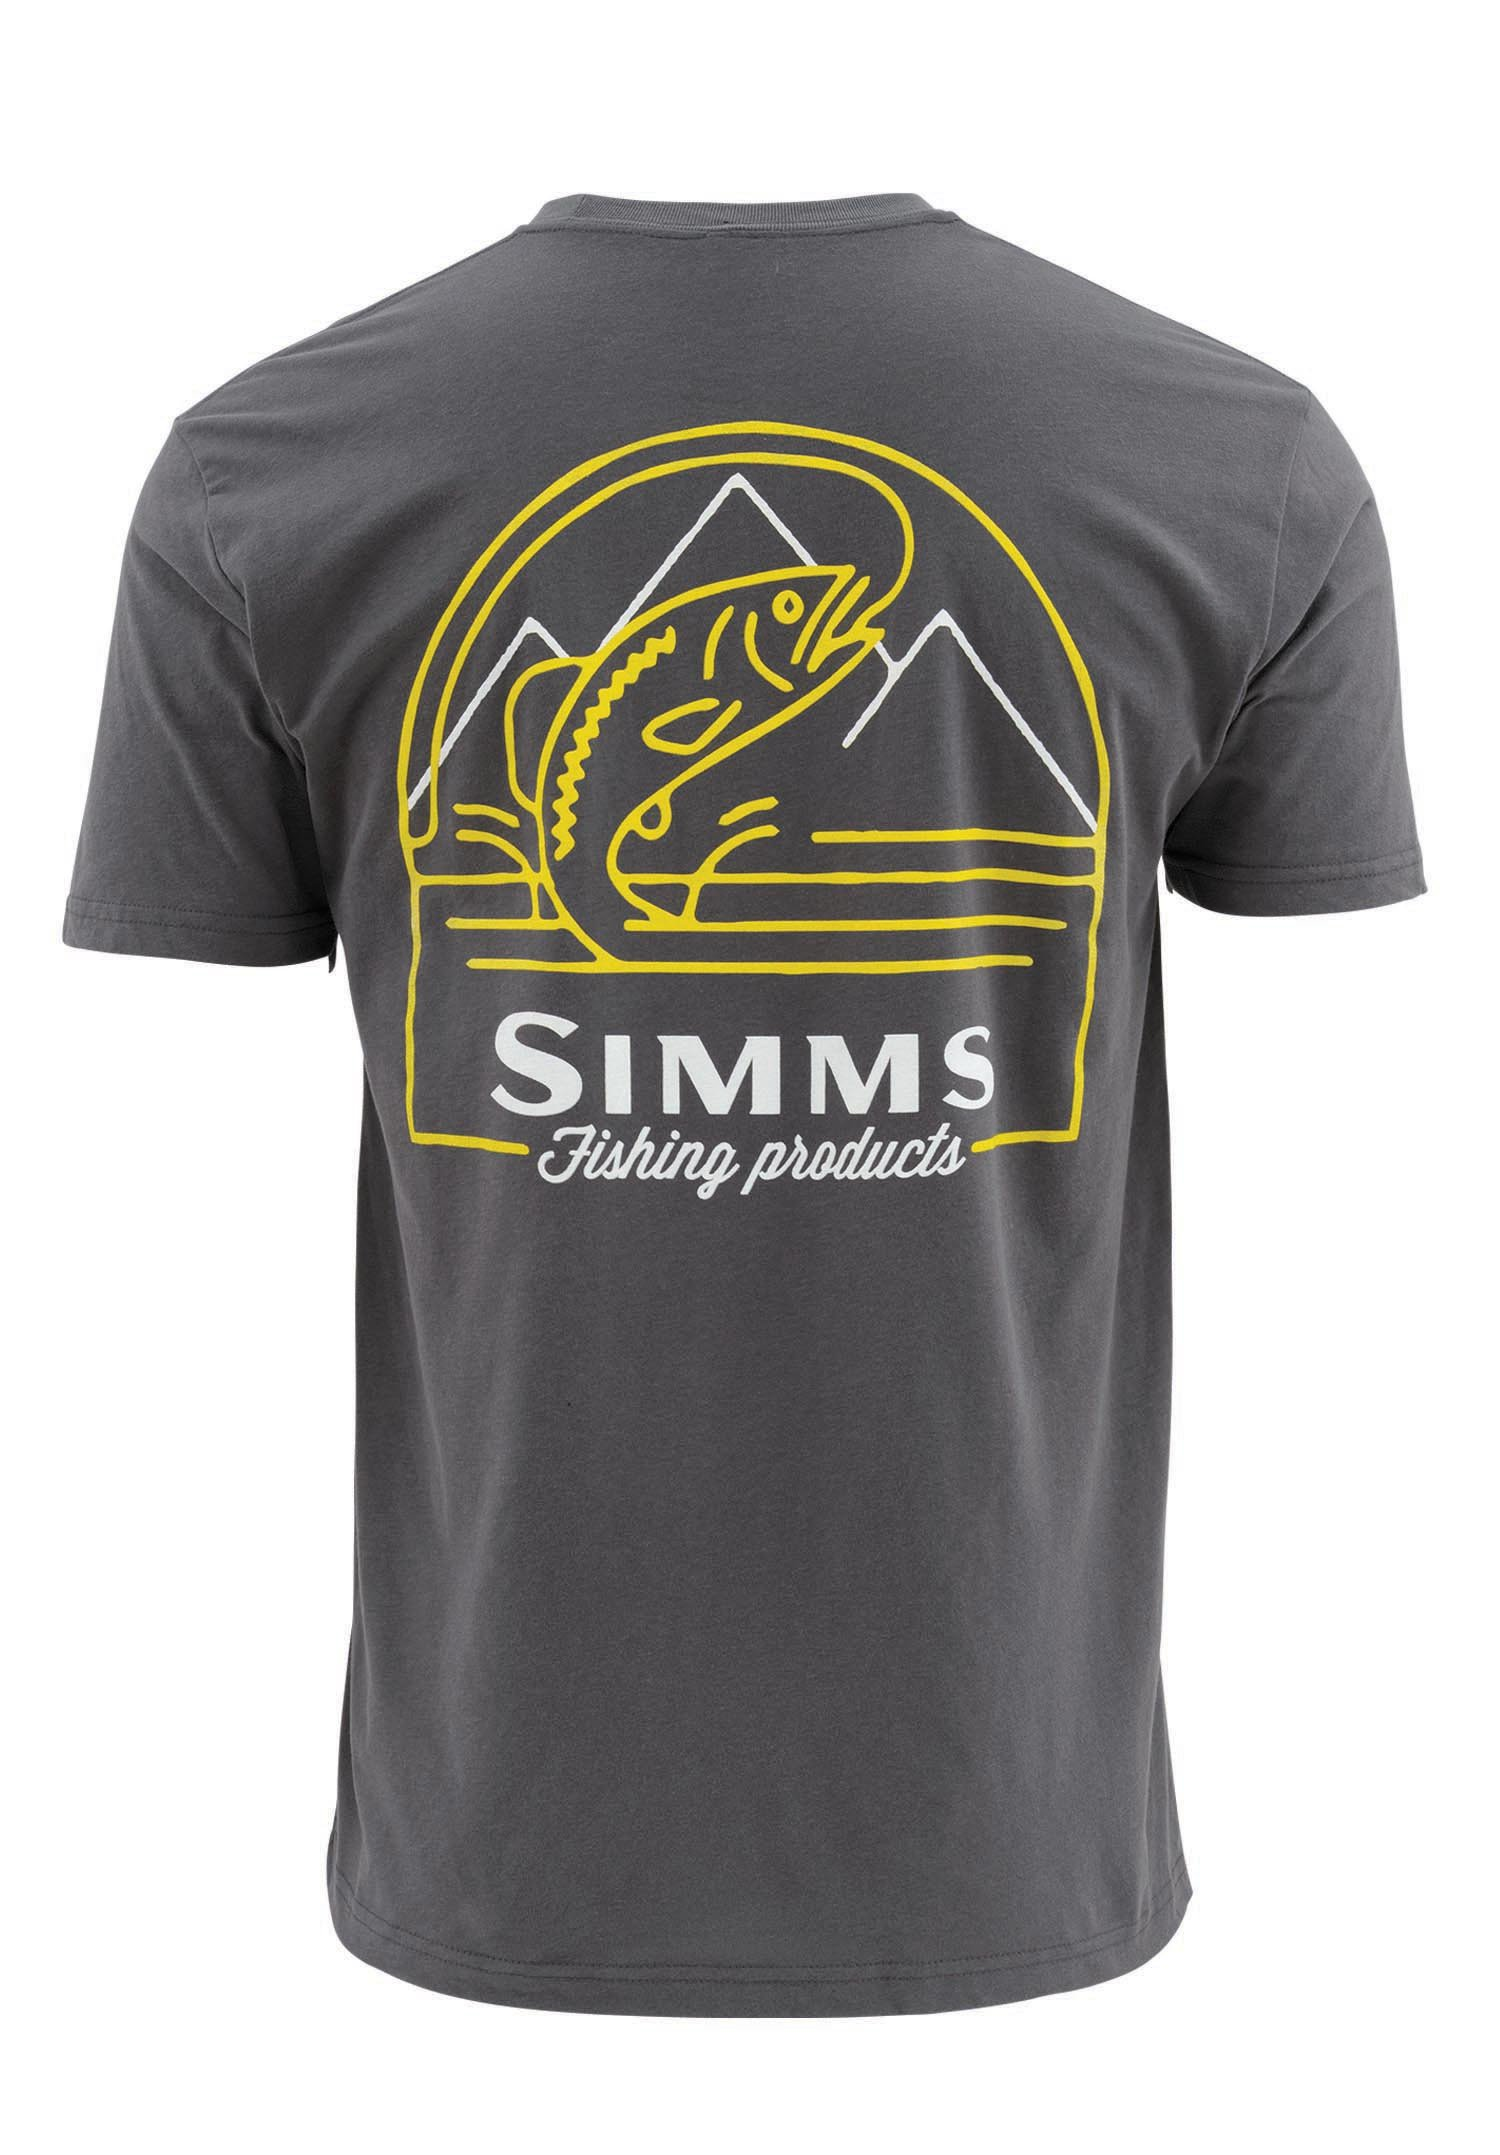 Simms weekend trout t shirt anvil glasgow angling centre for Simms fishing shirts